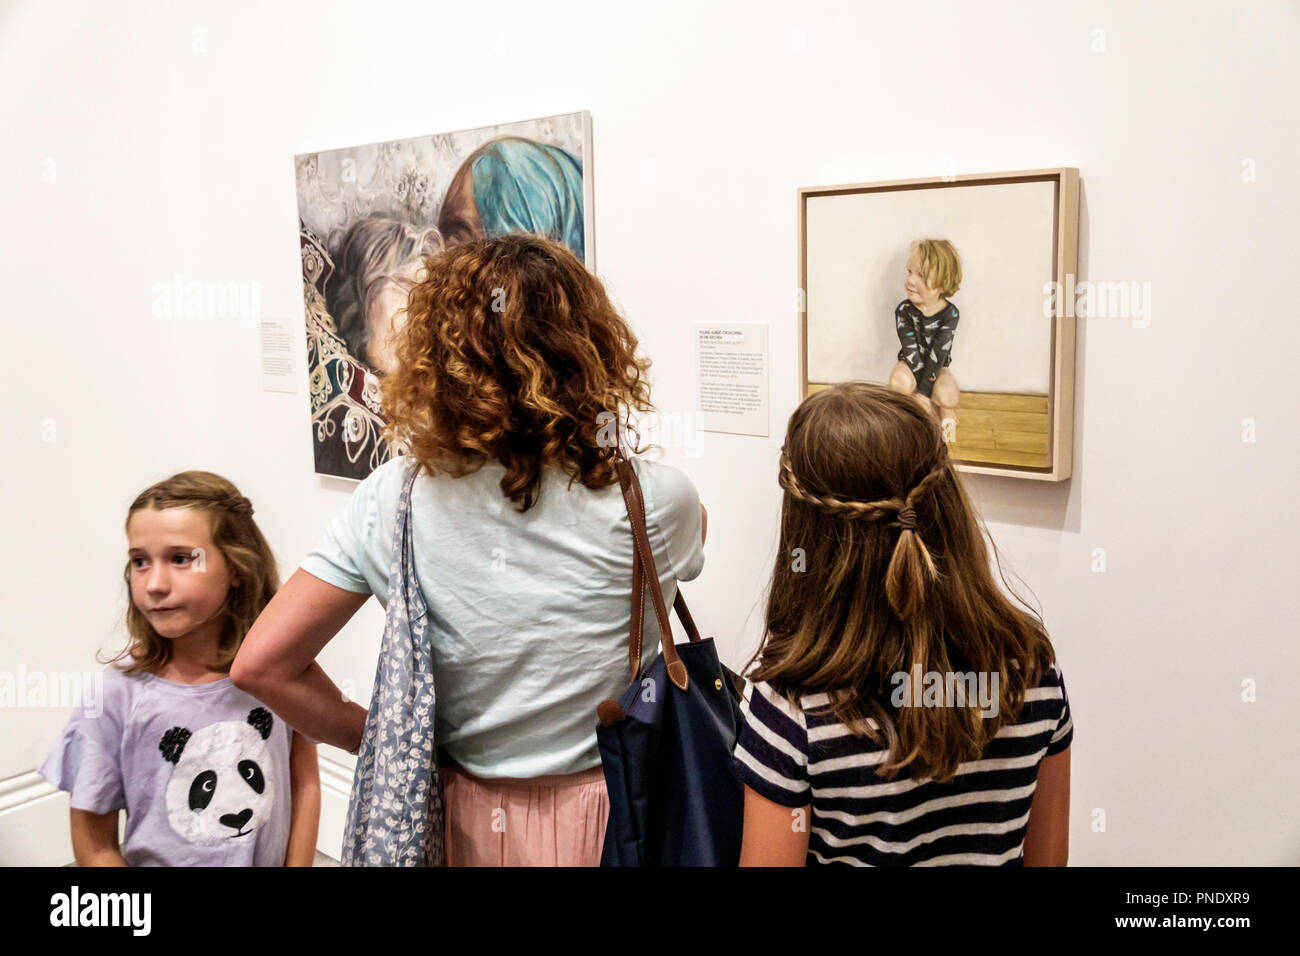 London England Great Britain United Kingdom Covent Garden National PortraitGallery art museum interior BP Portrait Award exhibition painting Annalisa Avancini Samantha Fellows Found Albert Crouching in the Kitchen woman girls mother daughters sisters family - Stock Image